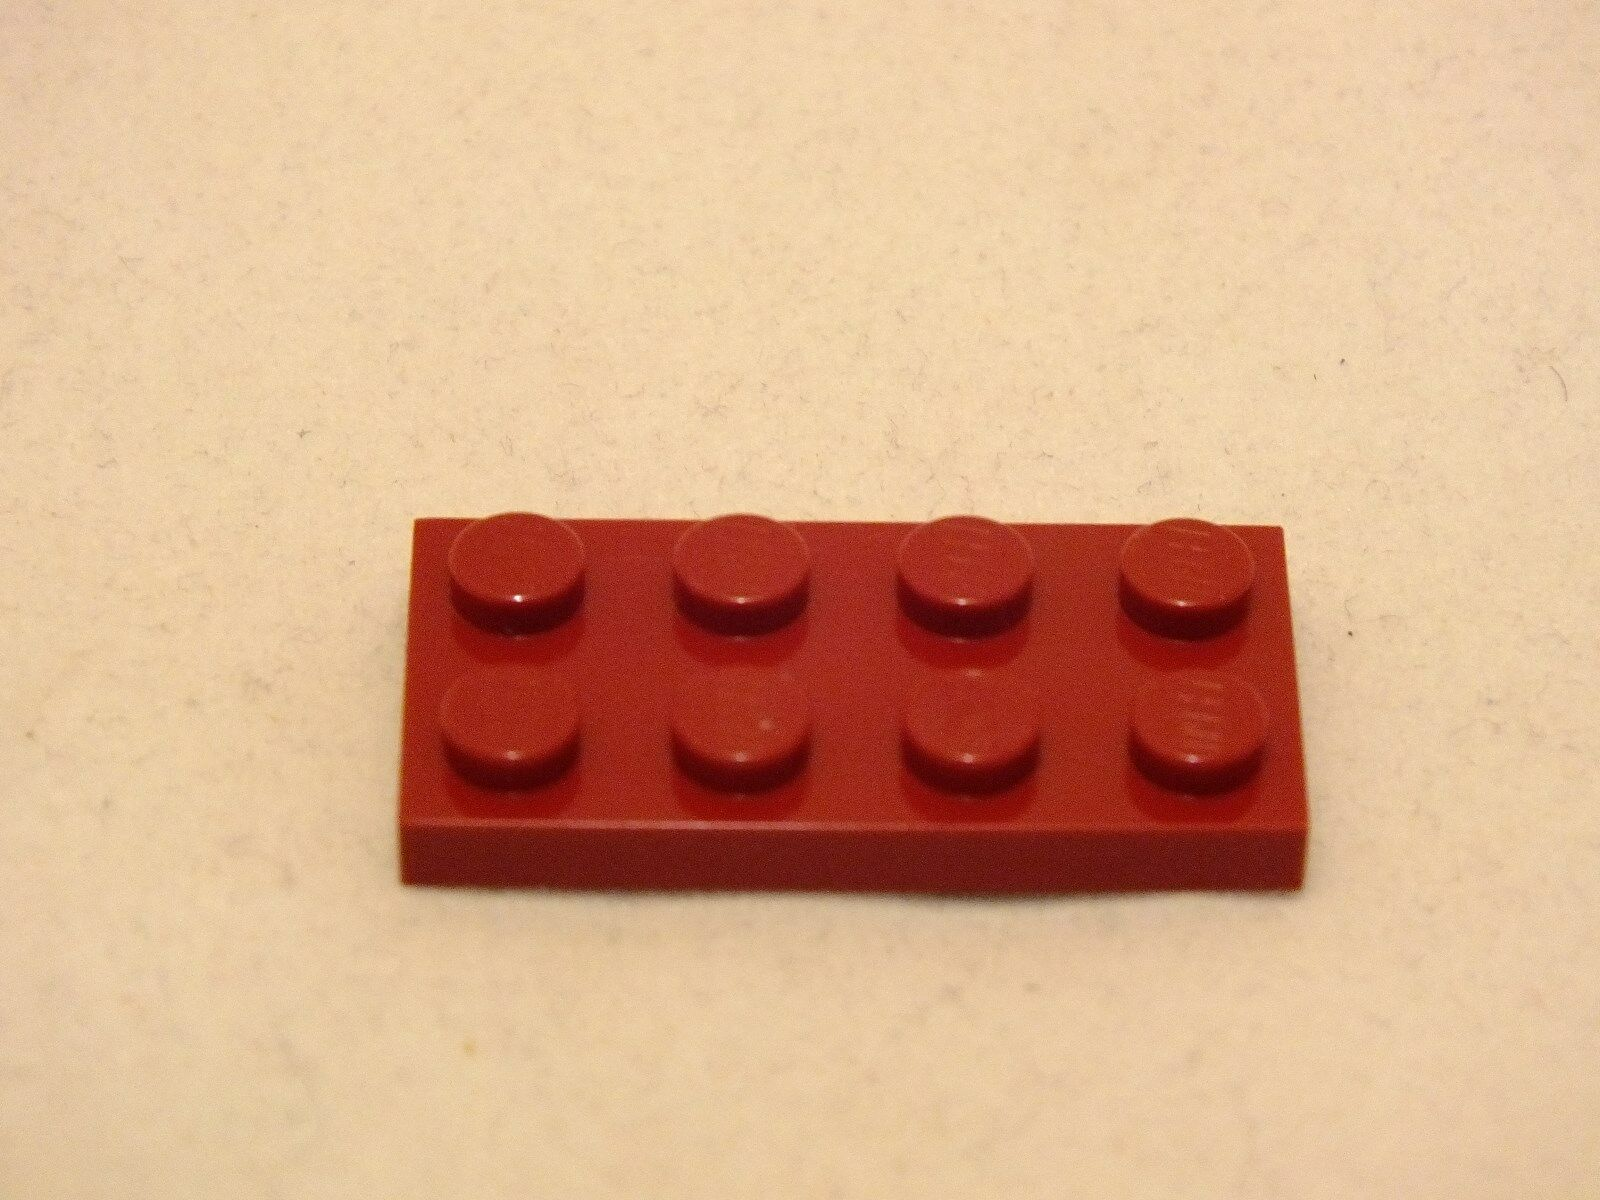 LEGO 2X4 DARK RED FLAT FLAT FLAT PLATE BRAND NEW NEVER USED 340 PIECES 8d88ee